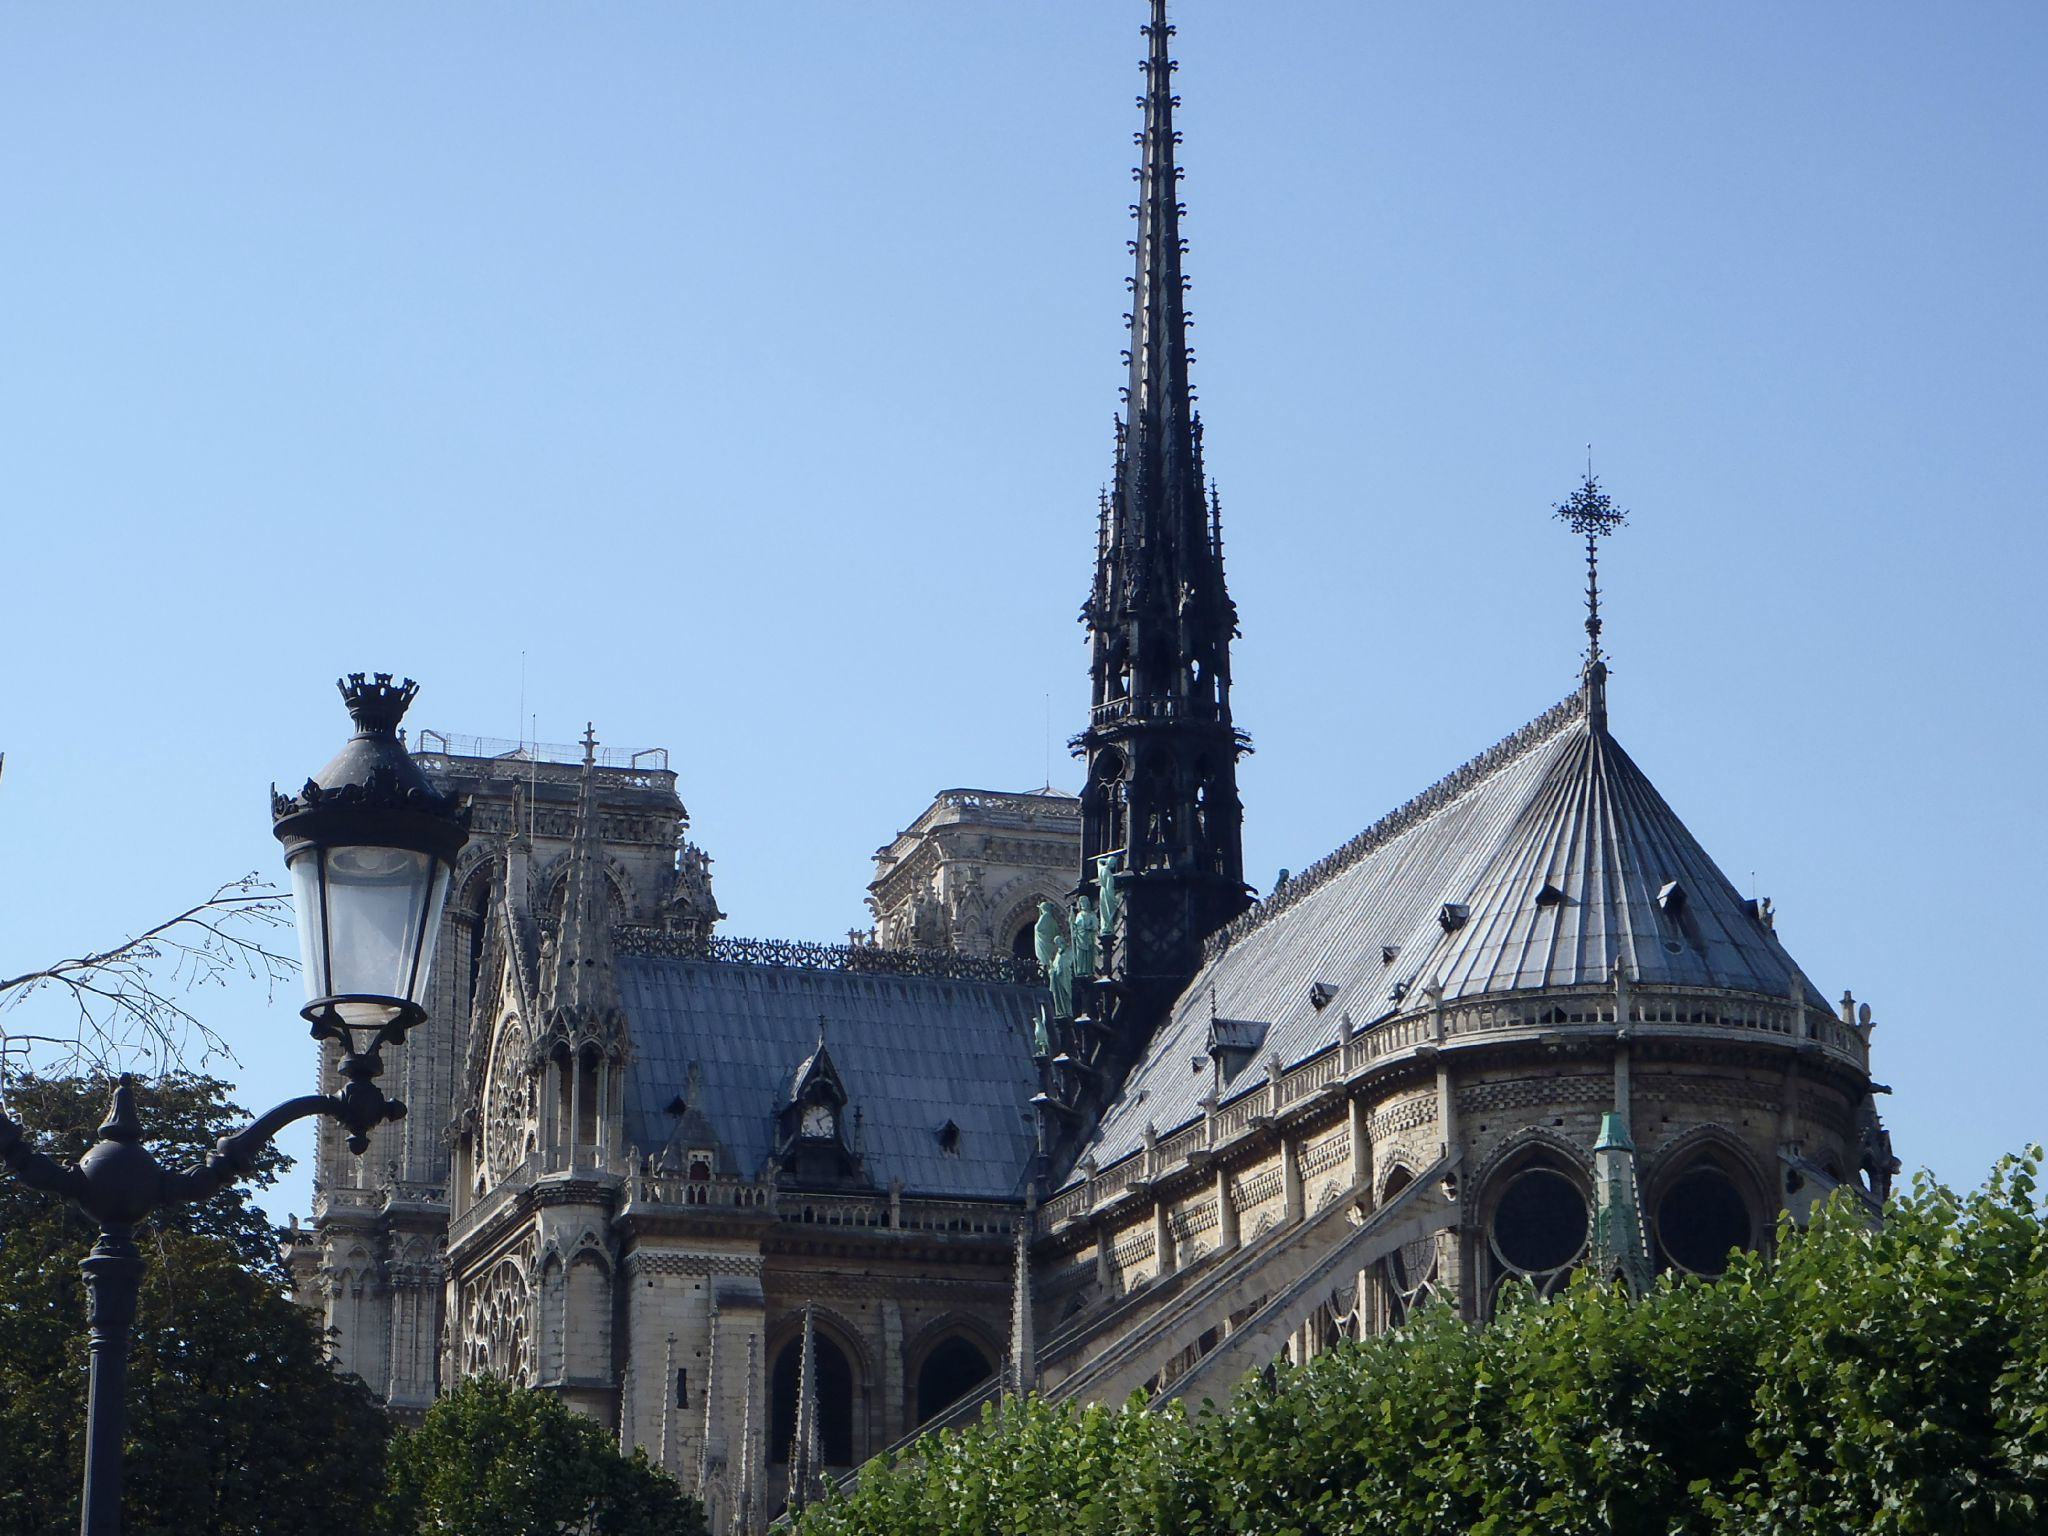 notre magestueuse dame